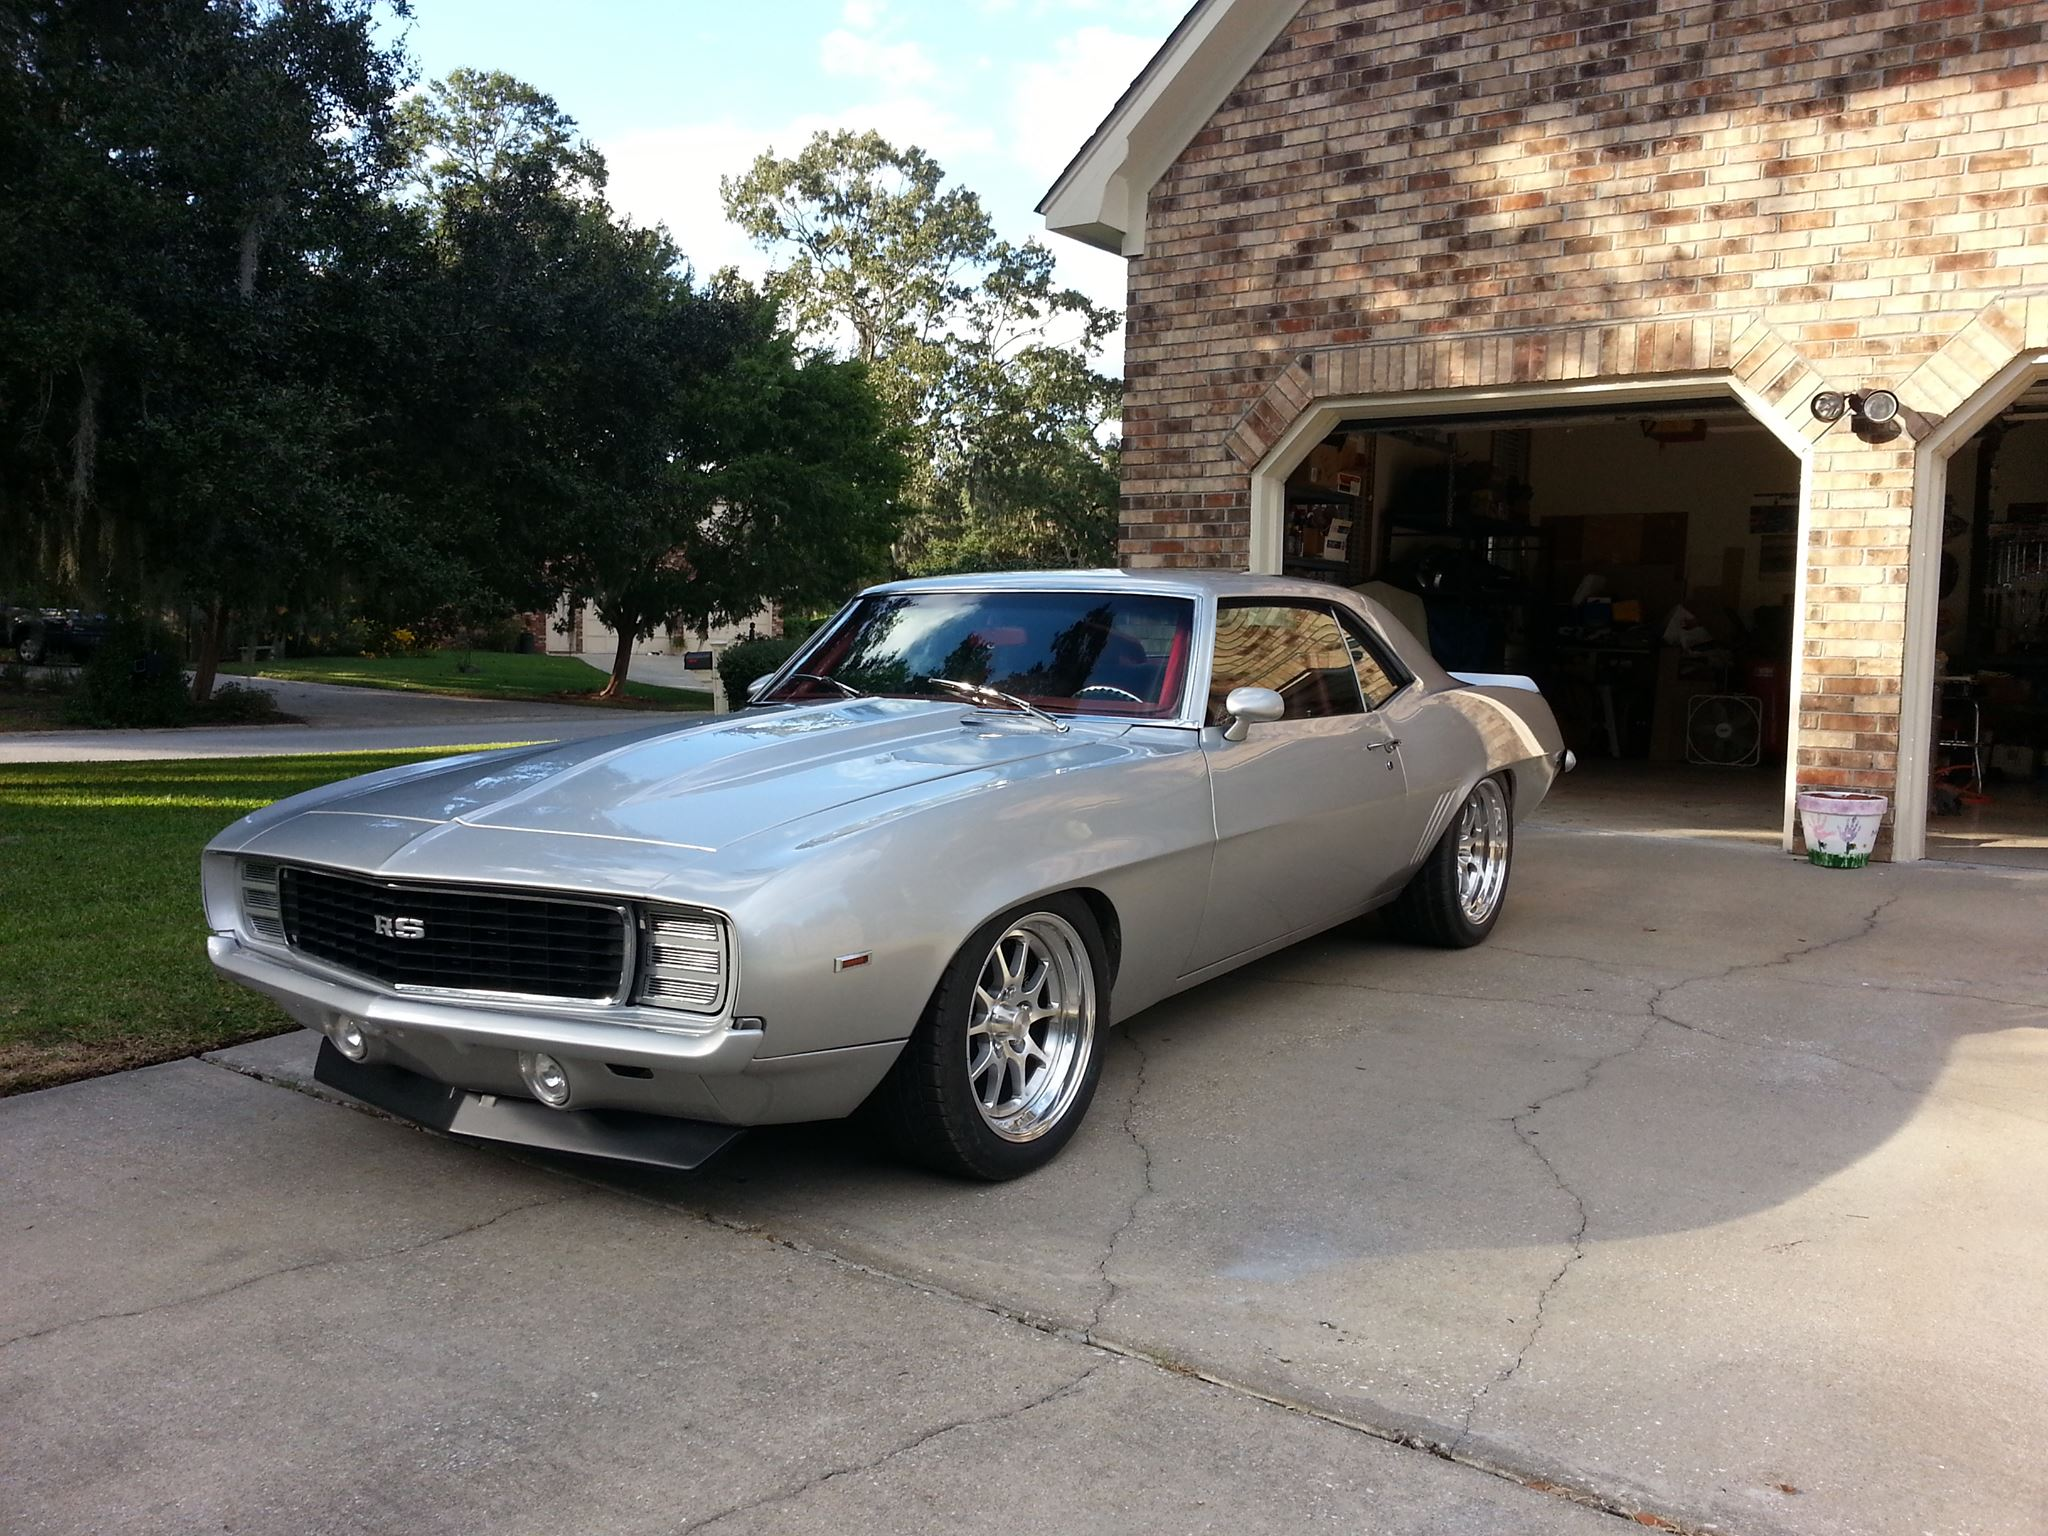 69-camaro-full-of-spectrum.jpg